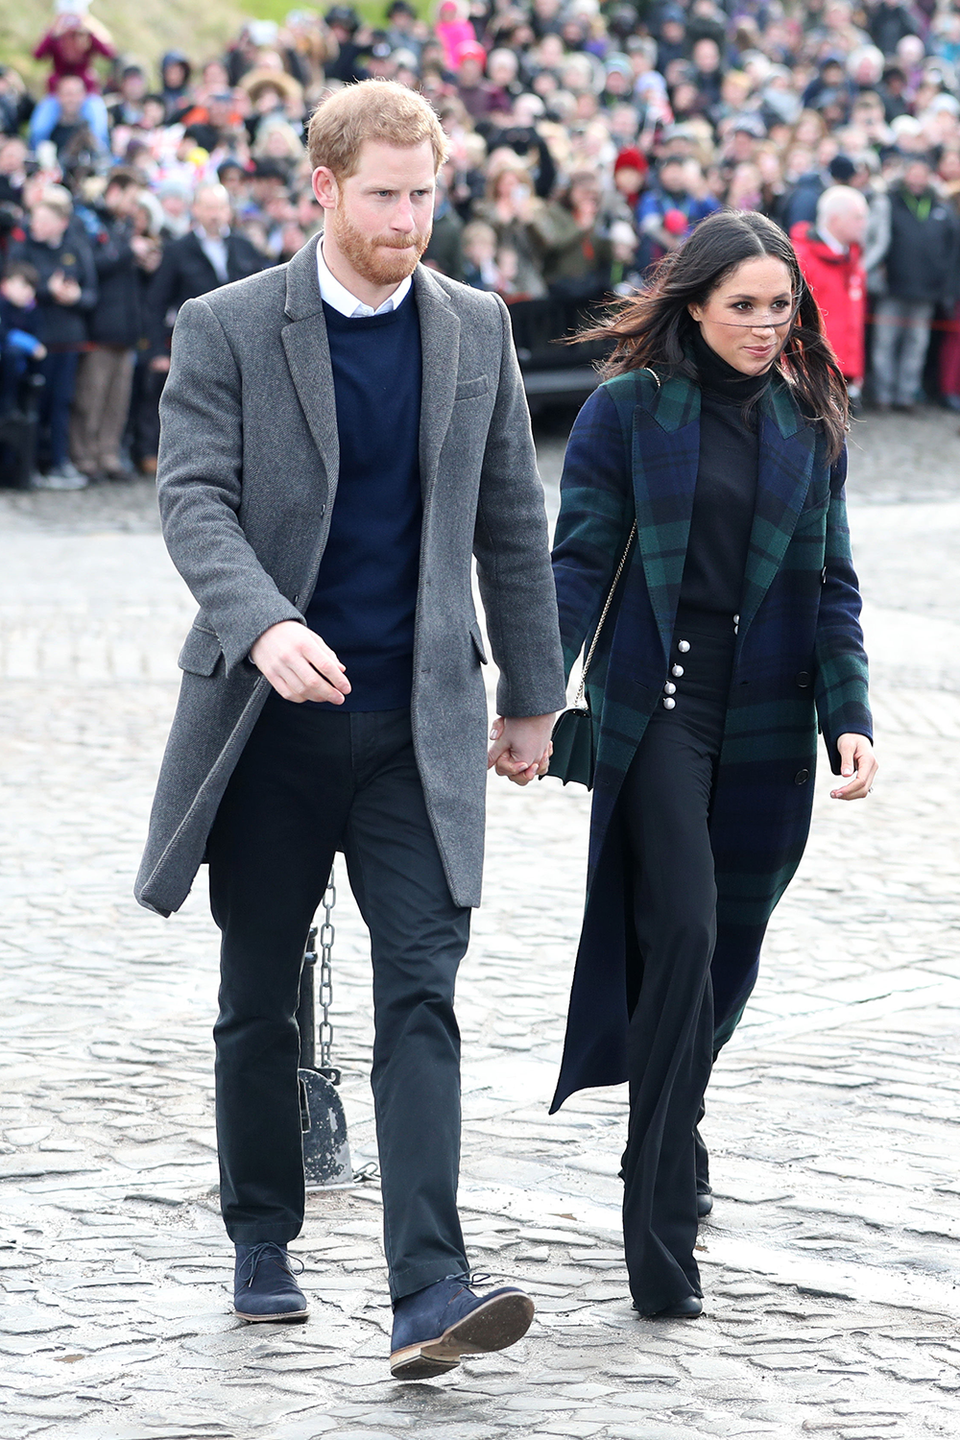 """<p>There's not an official rule about PDA, but royals usually keep it to a minimum, because they're working representatives of the monarchy. You'll notice, however, that Meghan and Prince Harry hold hands a lot—whether they're at an official appearance or caught in public by the paparazzi. This is <a href=""""https://www.vogue.com/article/prince-harry-meghan-markle-holding-hands-pda"""" rel=""""nofollow noopener"""" target=""""_blank"""" data-ylk=""""slk:partly because"""" class=""""link rapid-noclick-resp"""">partly because</a> Harry, as the sixth person in line for the throne, has slightly less responsibility to uphold the image of the monarchy than his older brother does. </p>"""